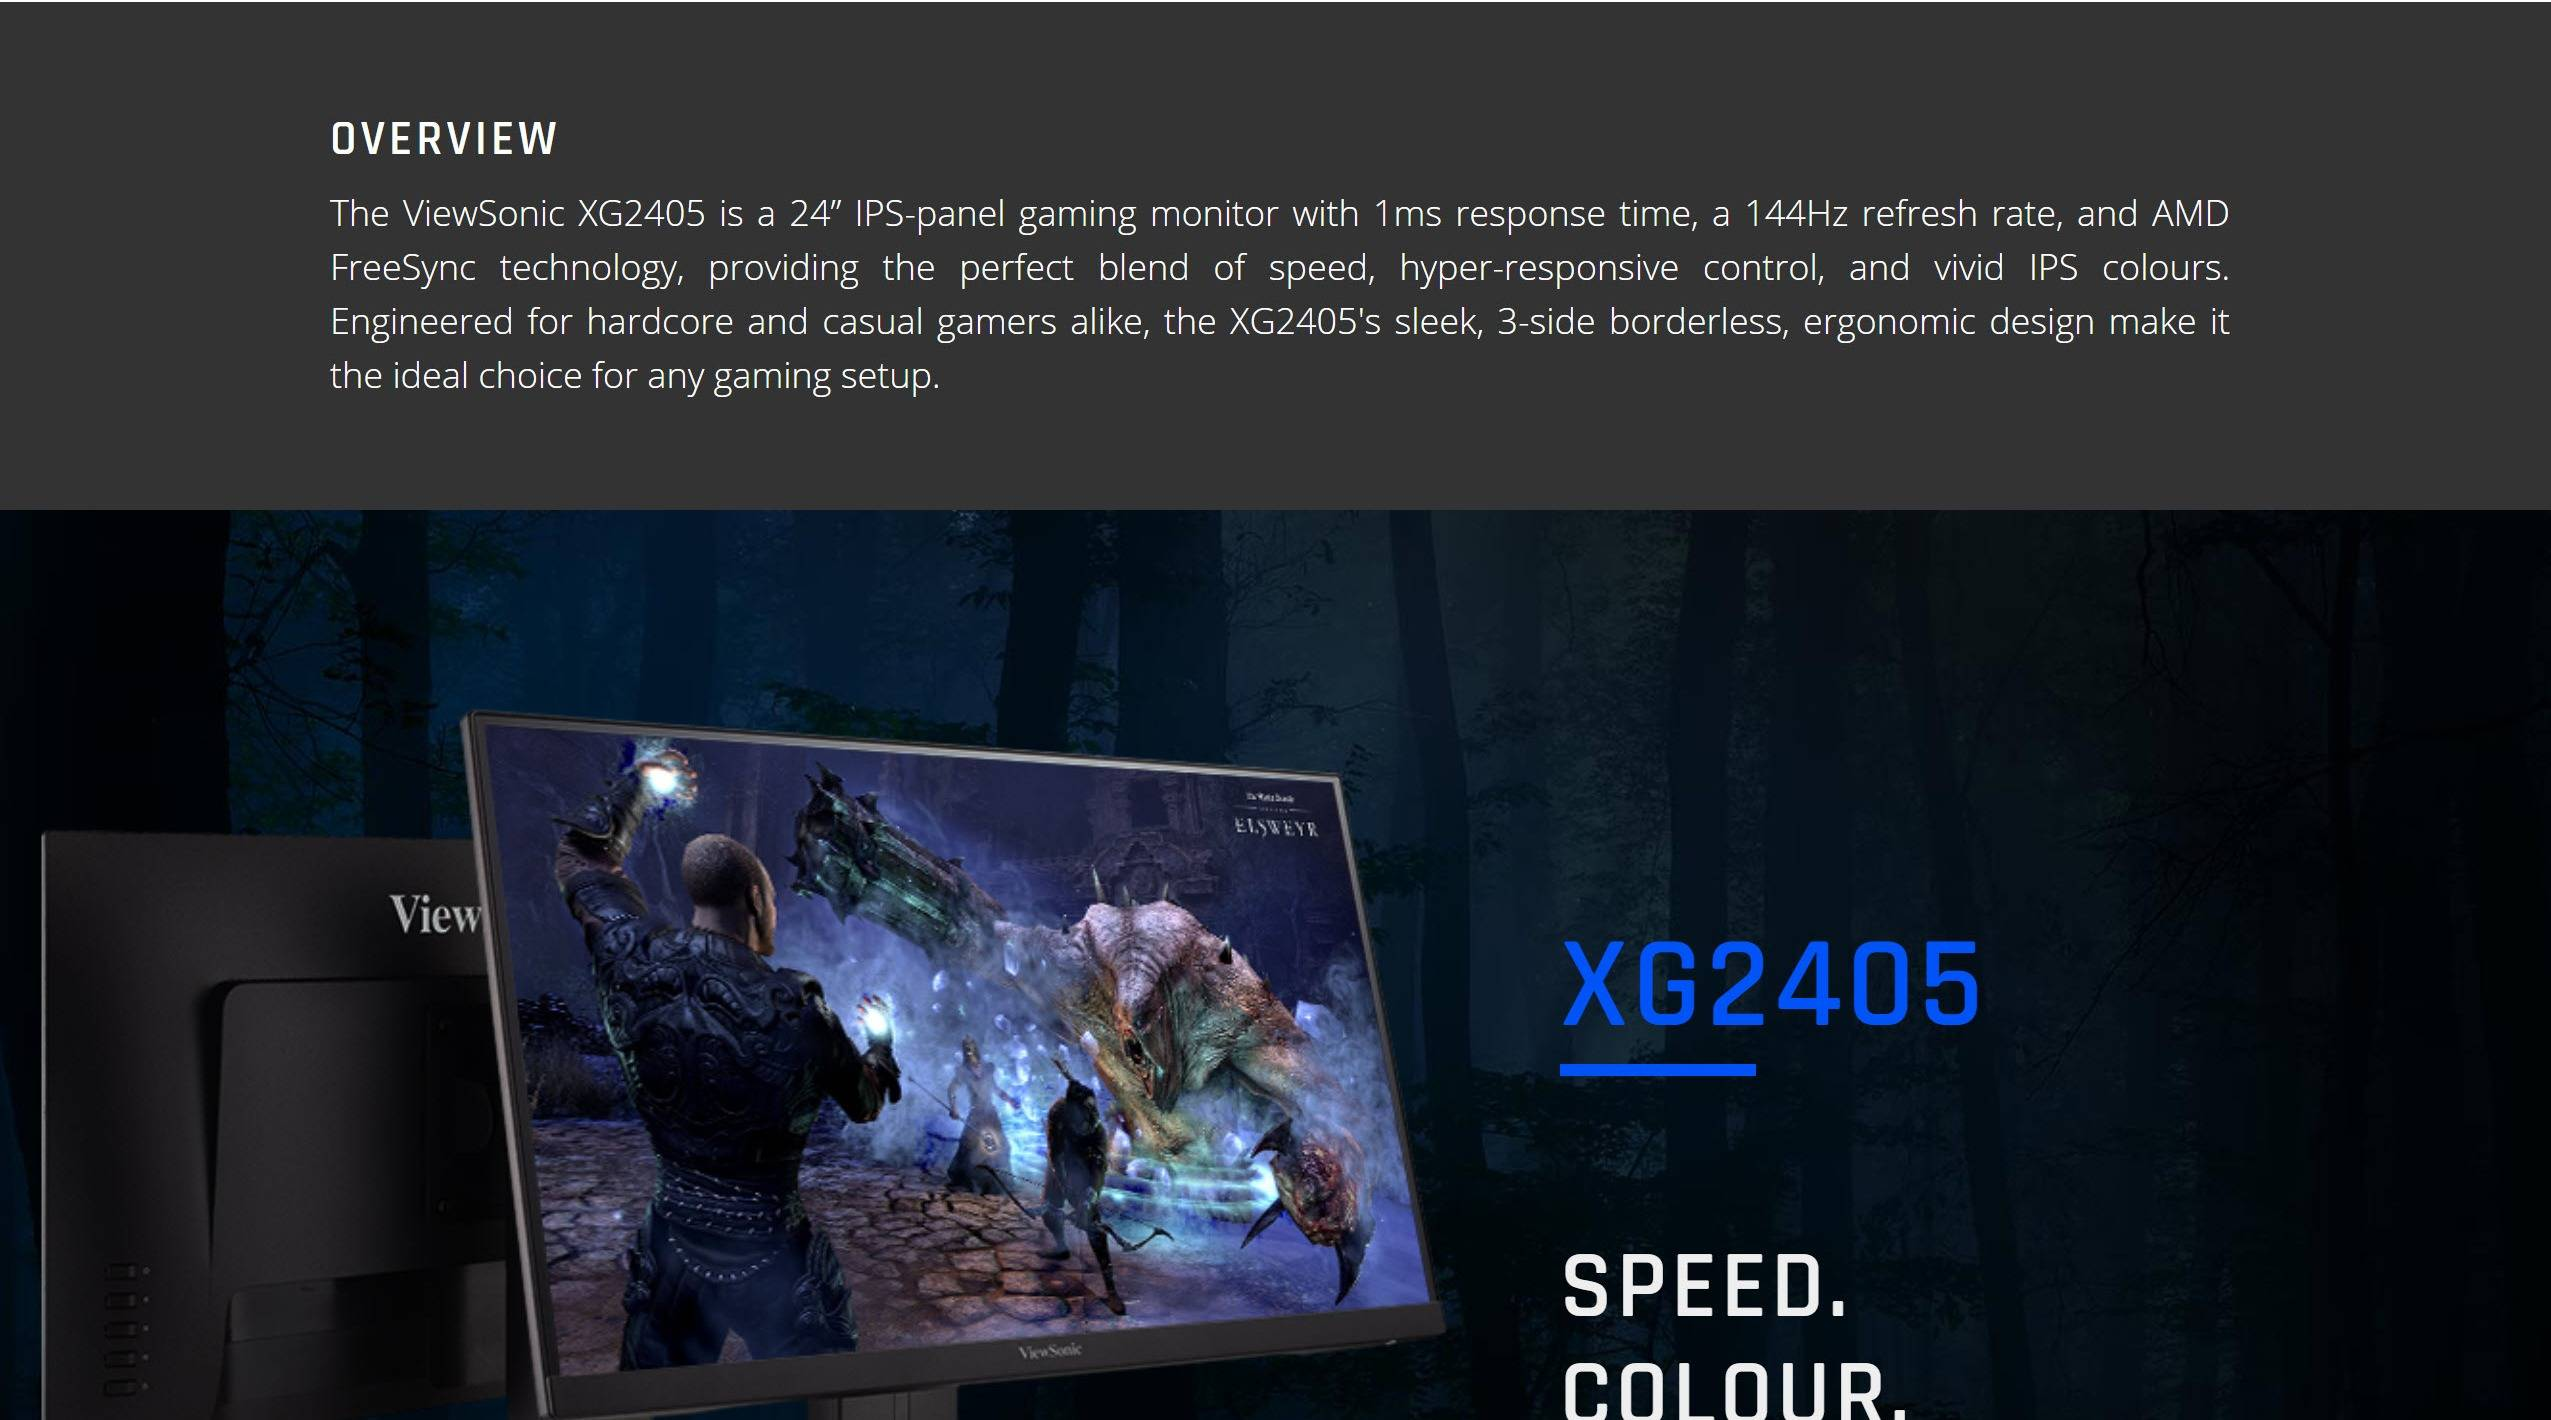 ViewSonic XG2405 Features 03